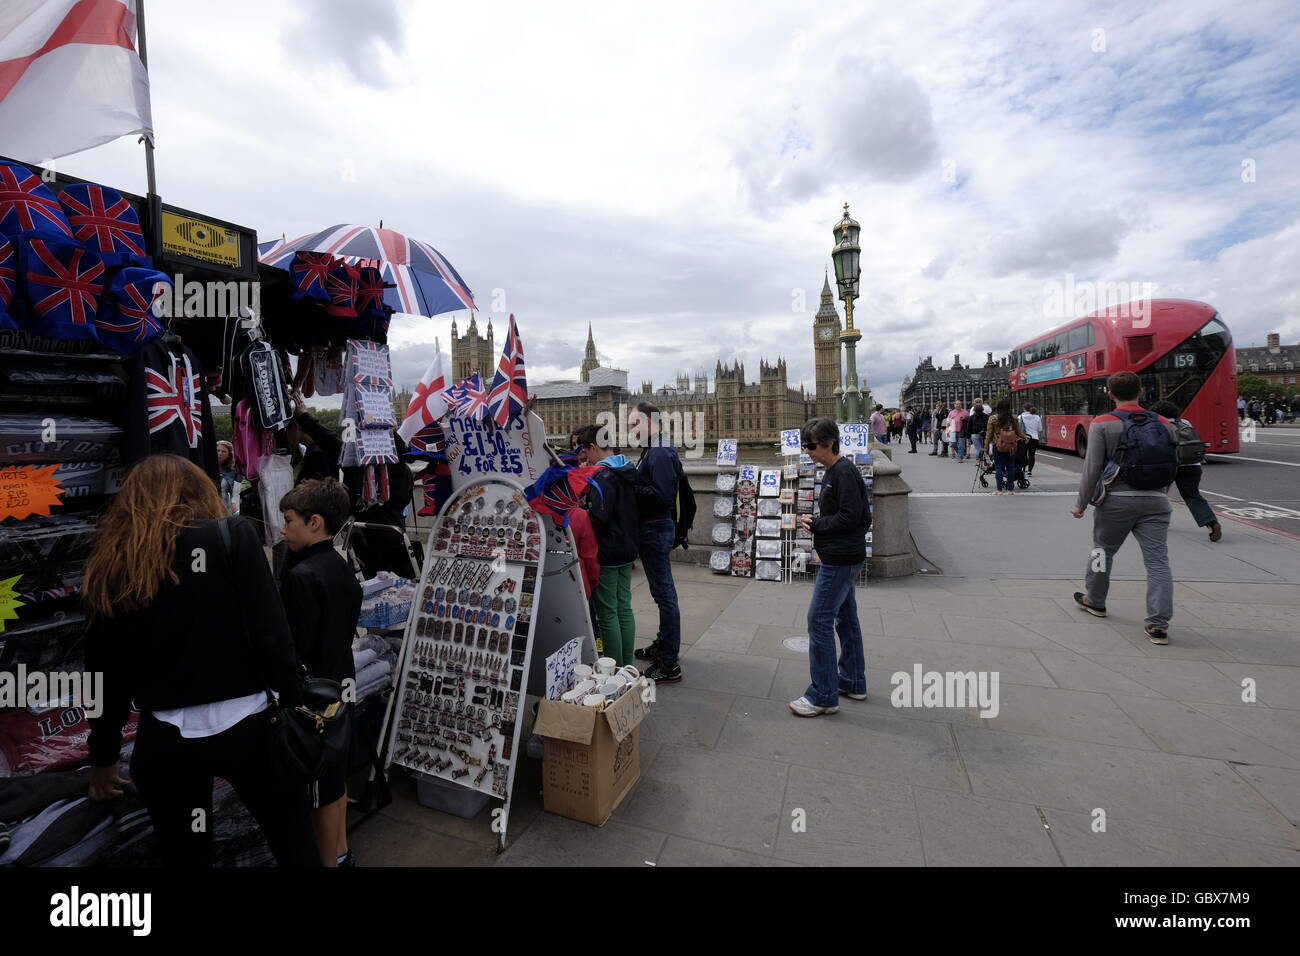 Curio sellers at their stall on Westminster Bridge with the Houses of Parliament and Big Ben in the background - Stock Image